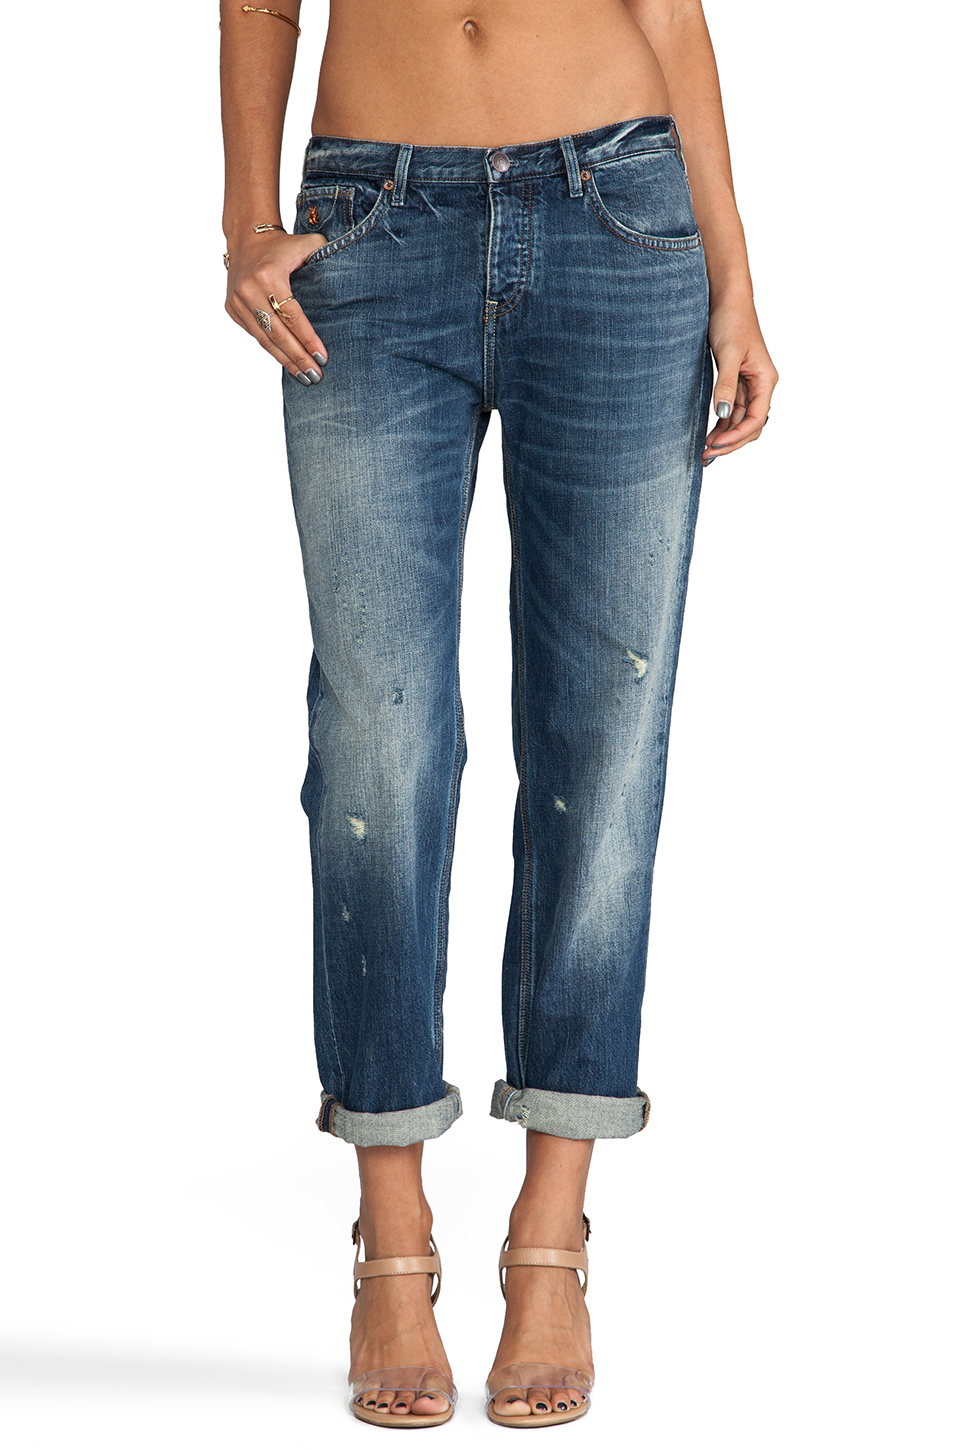 Maison Scotch Boyfriend Fit in Med Denim